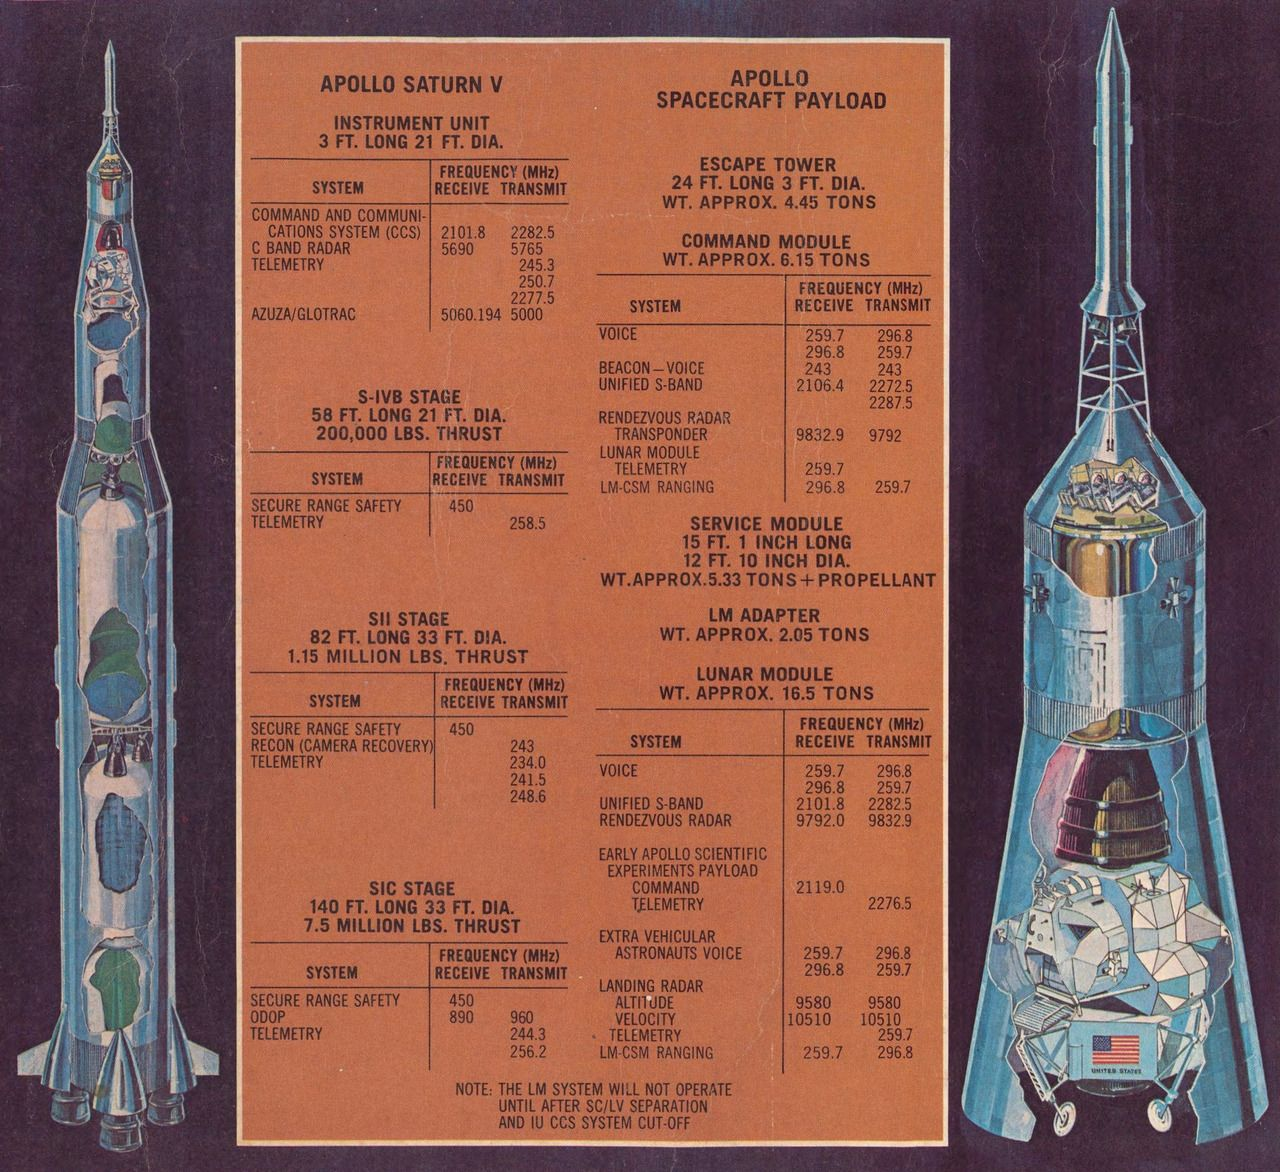 Apollo 11 by the numbers From Apollo Initial Lunar Landing Mission published by generalelectric